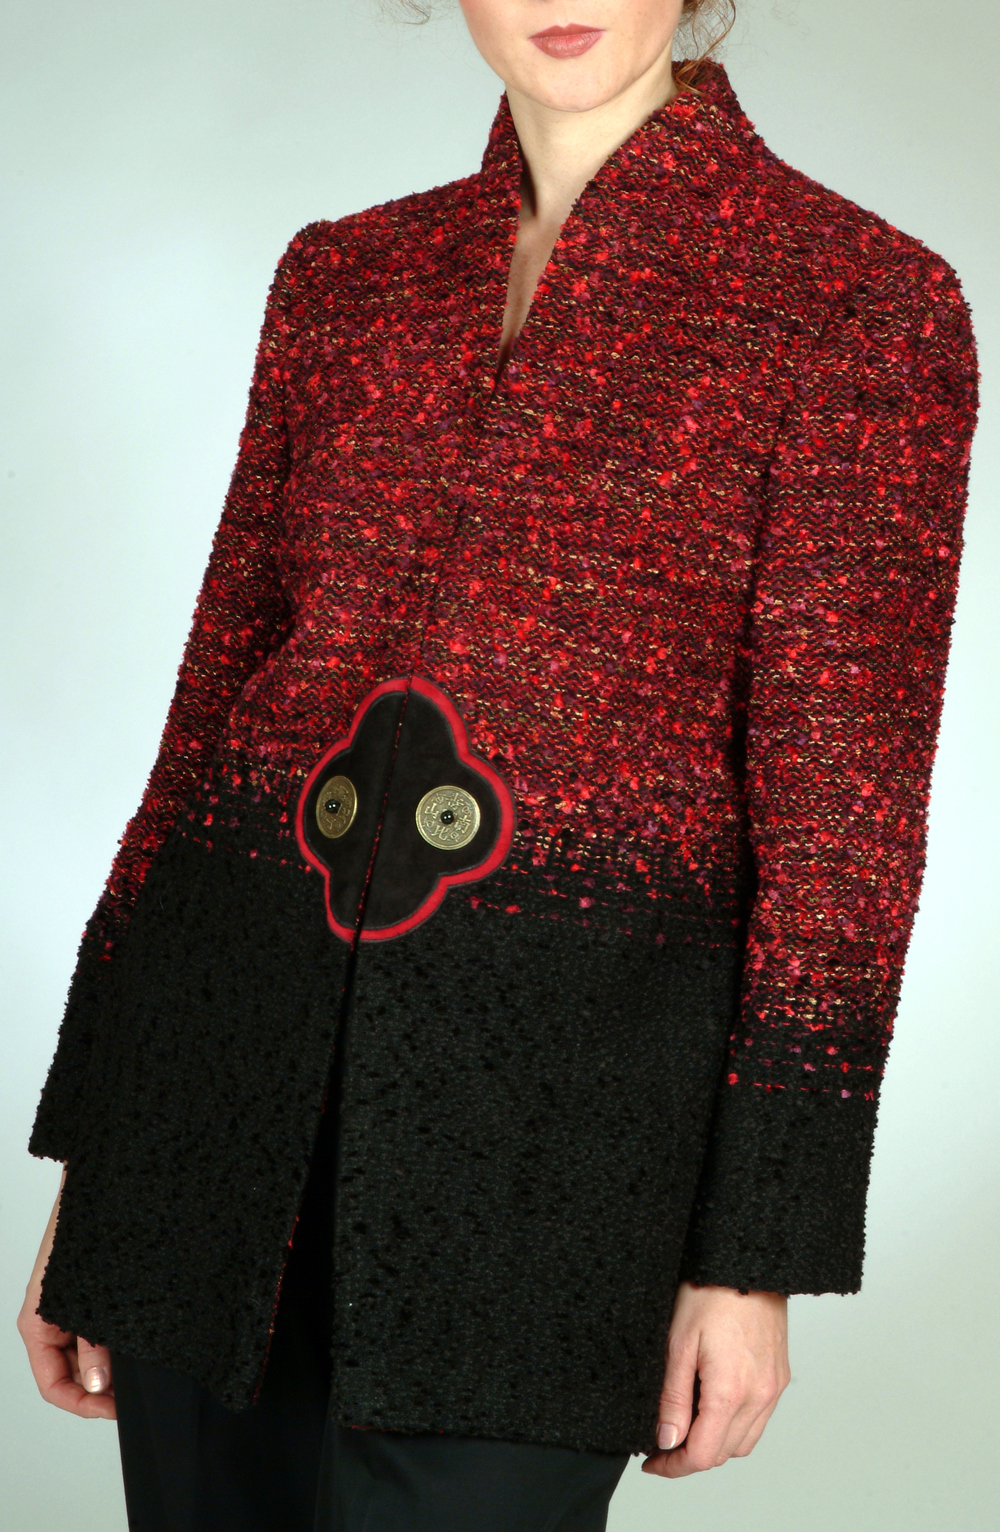 Handwoven Jacket, Business Apparel, Kathleen Weir-West 12.jpg